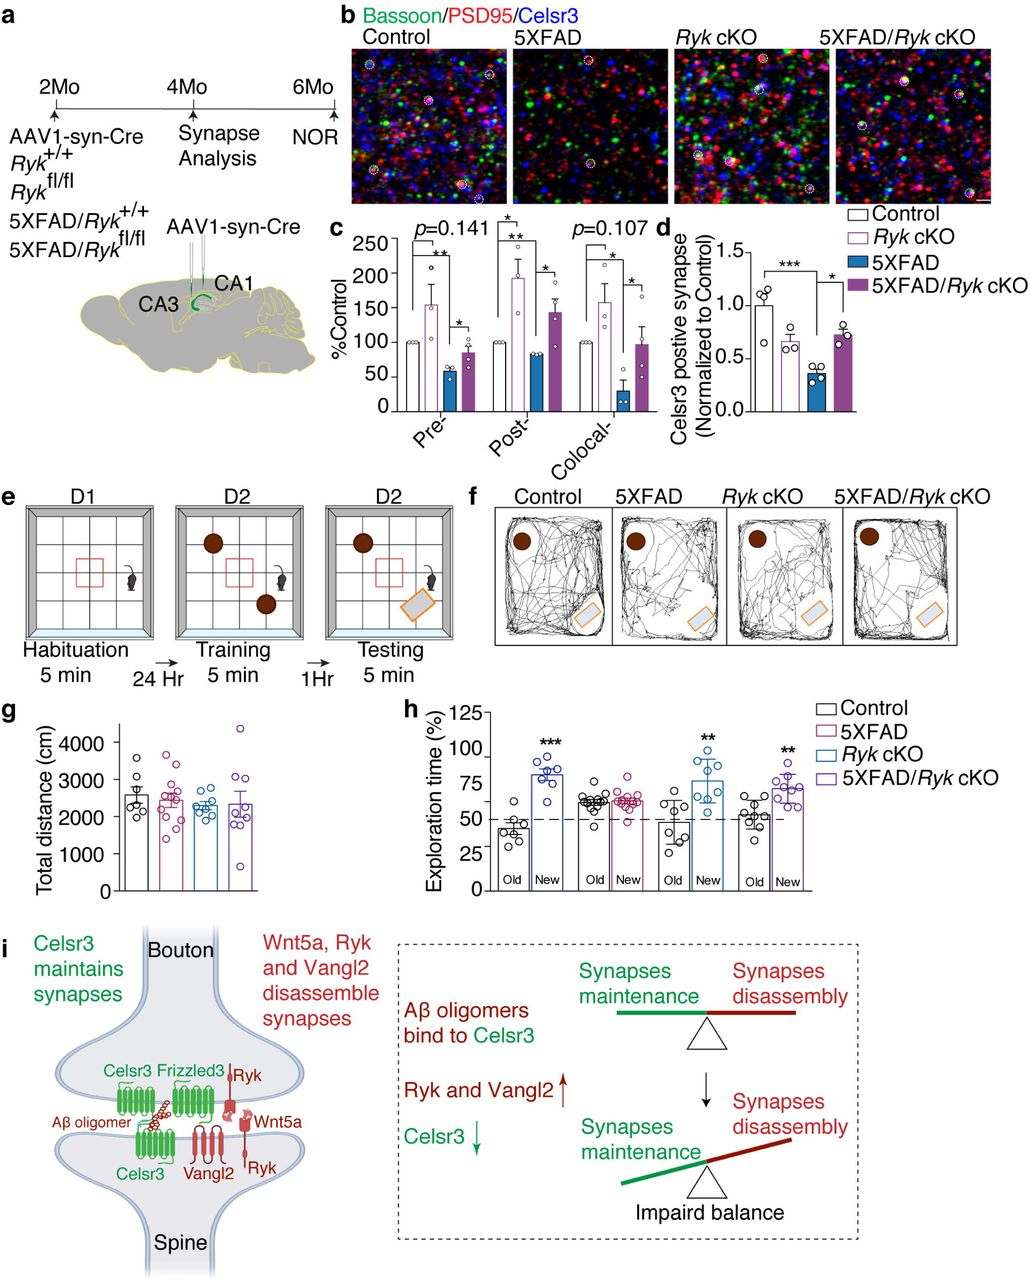 Function blocking Ryk antibody and Ryk cKO can prevent synapse loss and preserve cognitive function in 5XFAD mice a , Schematics for timeline and experimental design. AAV1-hSyn-eGFP-Cre virus was injected into CA1 and CA3 region of the hippocampus bilaterally. Animals were fixed with perfusion and sectioning and stained with synaptic markers at 4 months of age. A separate set of animals were injected and subjected to NOR at 6 months of age. b-c, Representative images and quantification of synapse numbers. d, Quantification of Celsr3-positive glutamatergic synapse (Celsr3 colocalized with PSD95 and bassoon). e, Schematic showing the design of novel object recognition (NOR). Mice were subjected to an open arena for three trails to evaluate the memory of objects. f, Trajectories of mice in the NOR test session. g, Quantification of locomotion. h, Quantification of NOR. Student t -test. i, Schematic diagram showing the balance of Wnt/PCP signaling in synapse maintenance and the binding site of oligomeric Aβ. * P